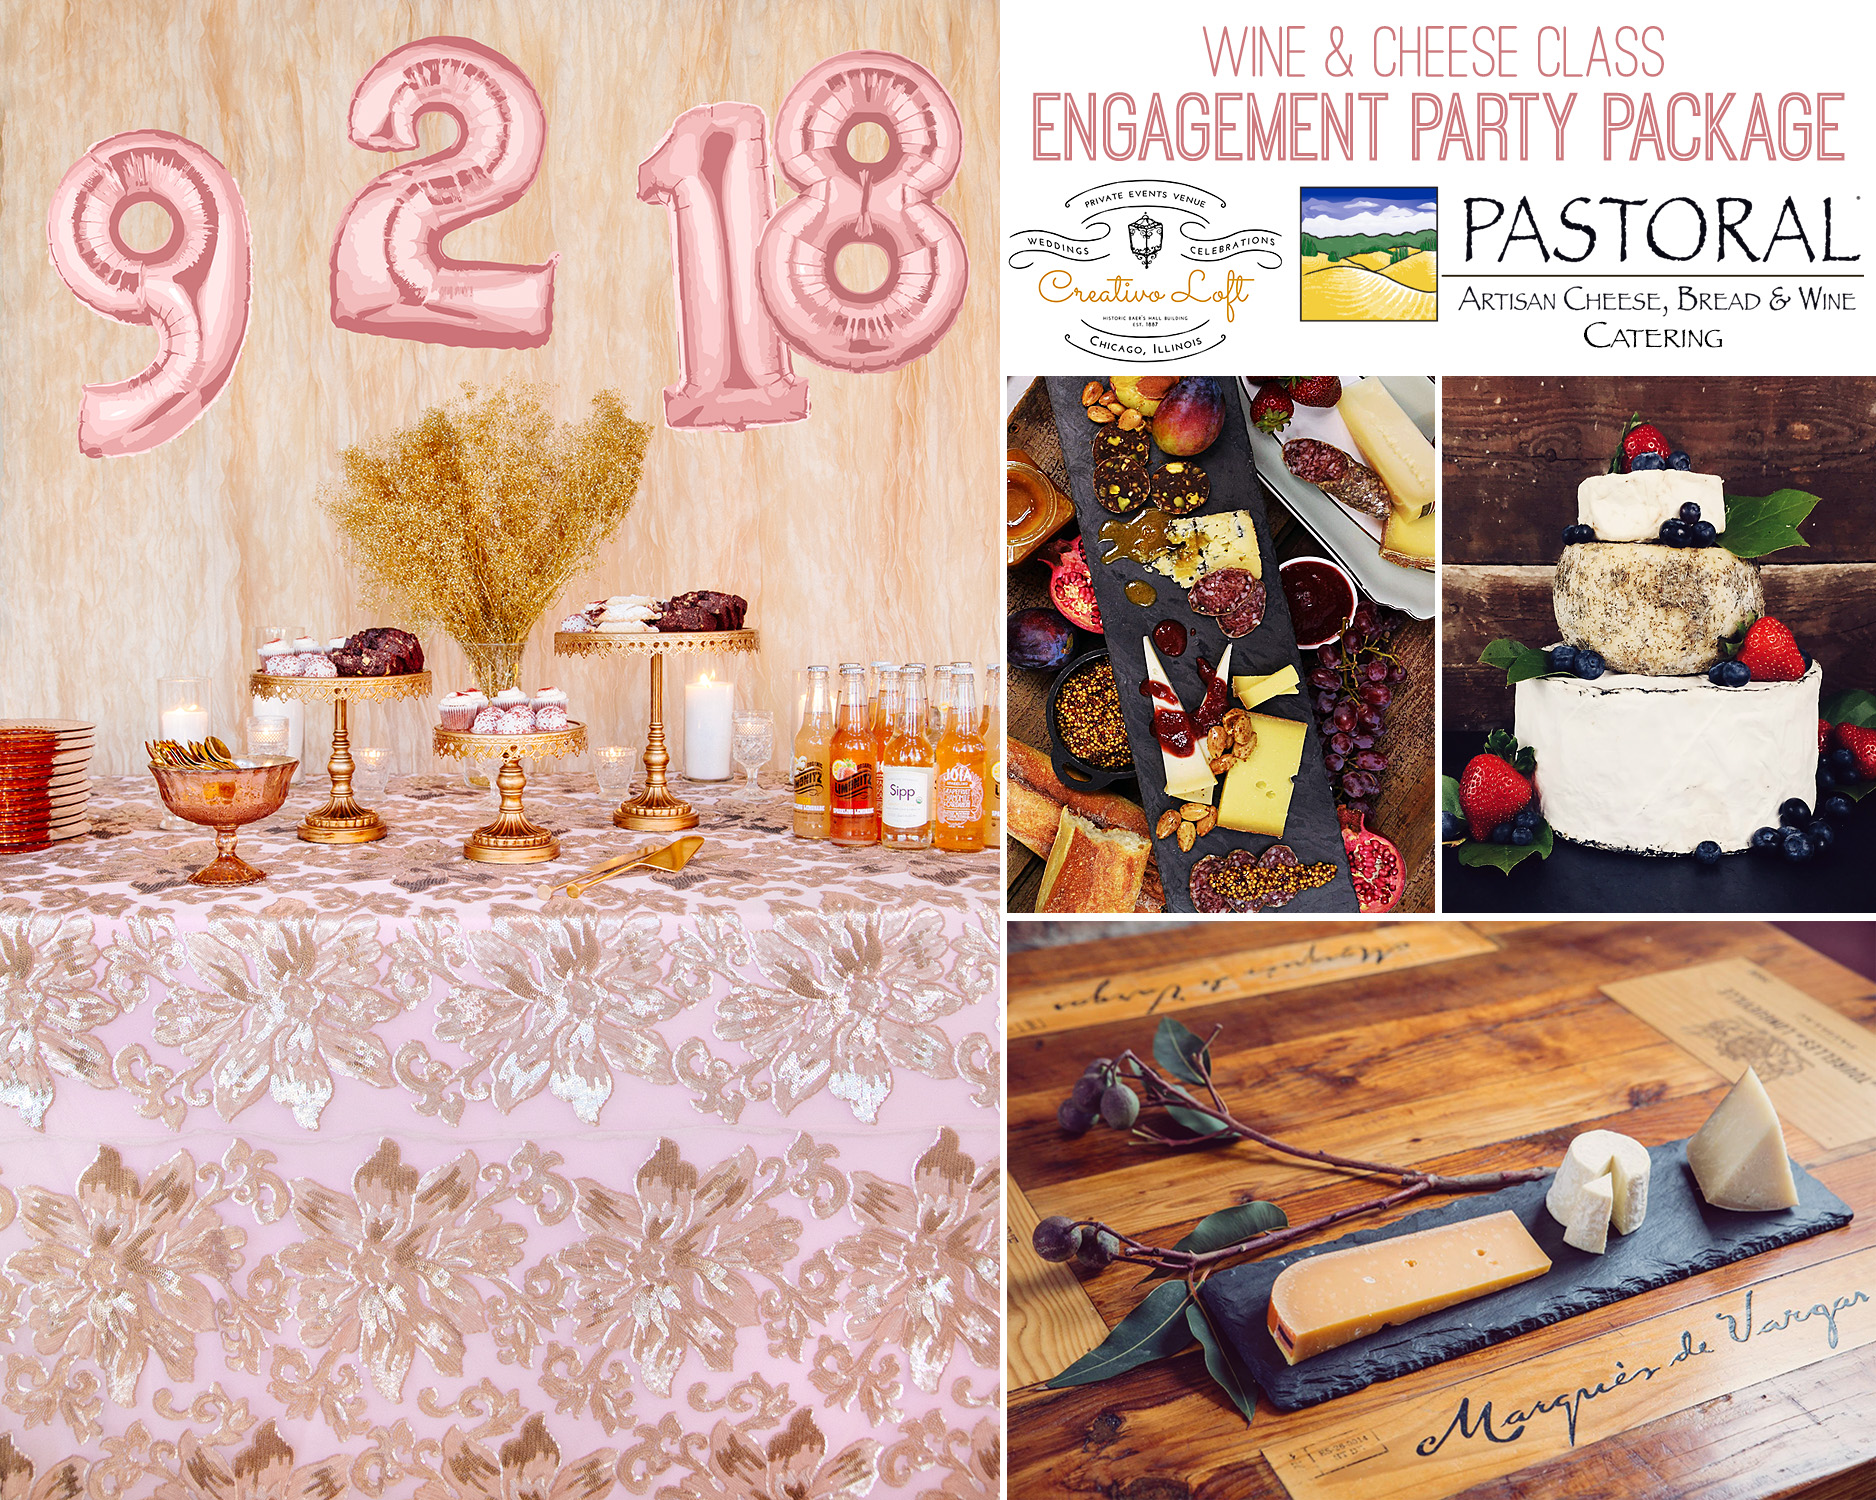 photos: Creativo Loft (left image), all other images from Pastoral Artisan Cheese Bread and Wine